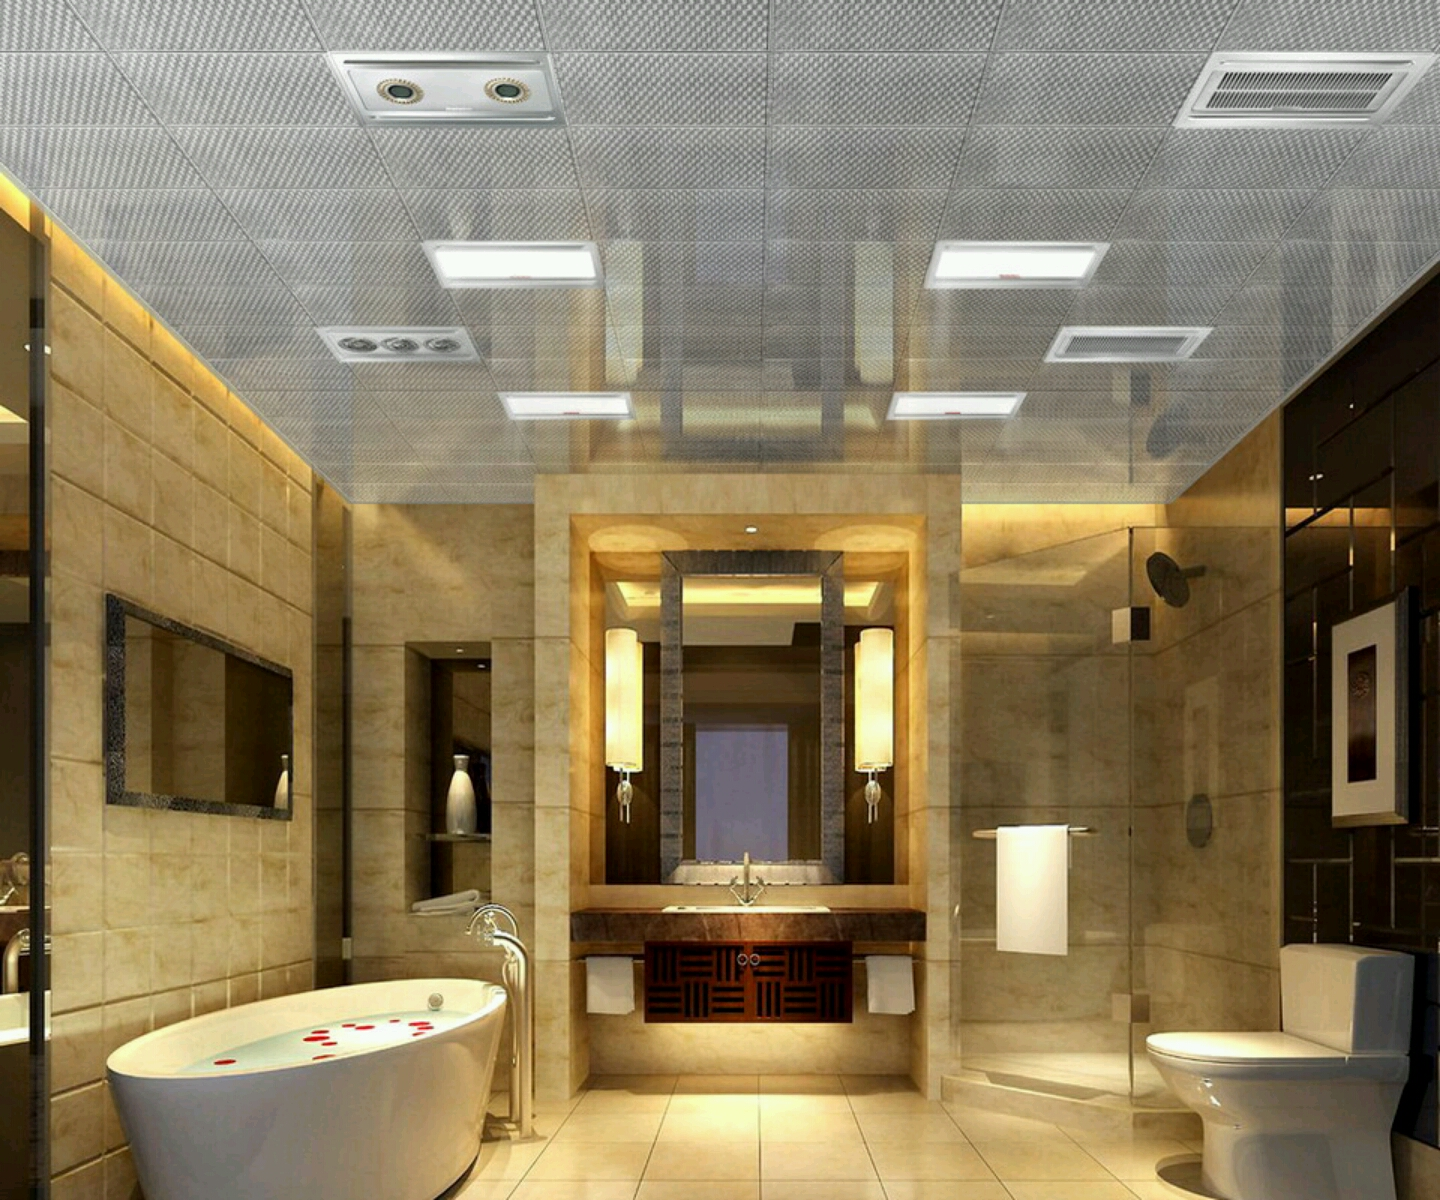 New home designs latest luxury bathrooms designs ideas for House bathroom design